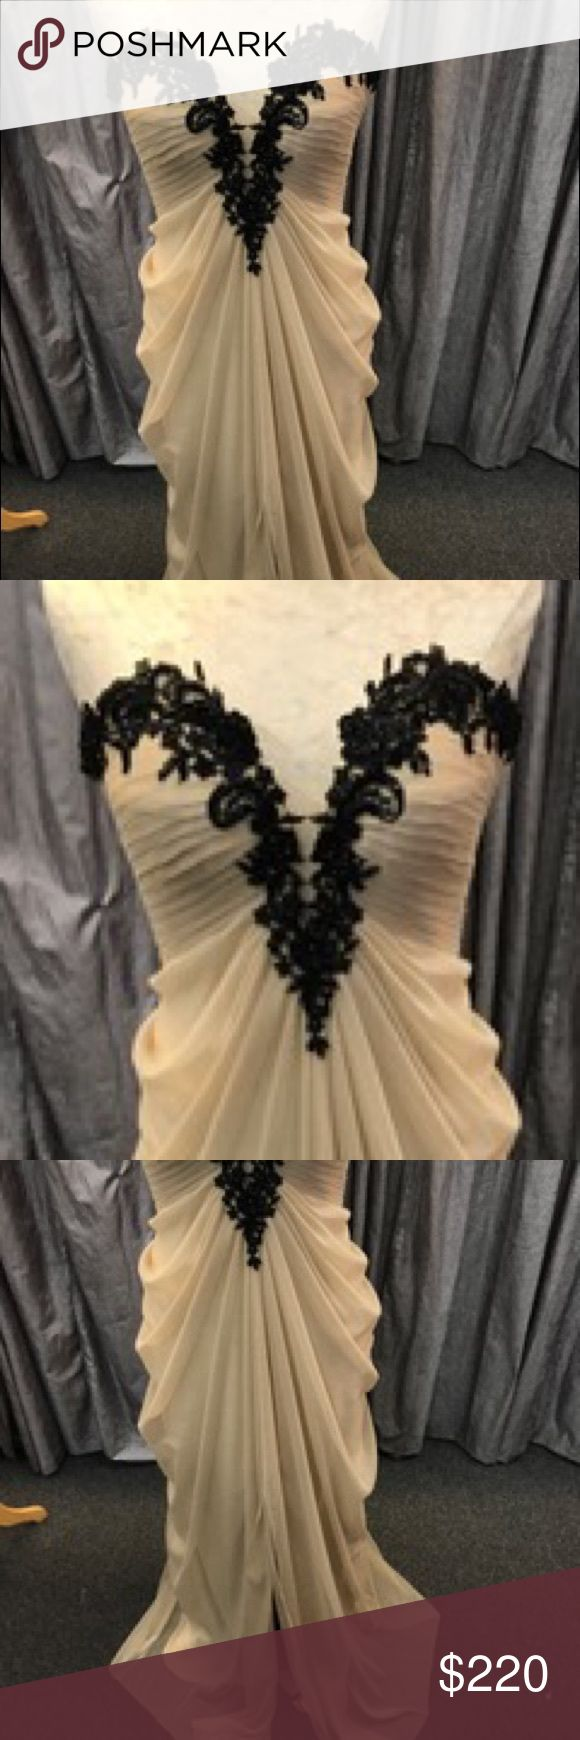 La Femme gown La Femme gown with black lace on top, stretch material. Great condition. La Femme Dresses Prom